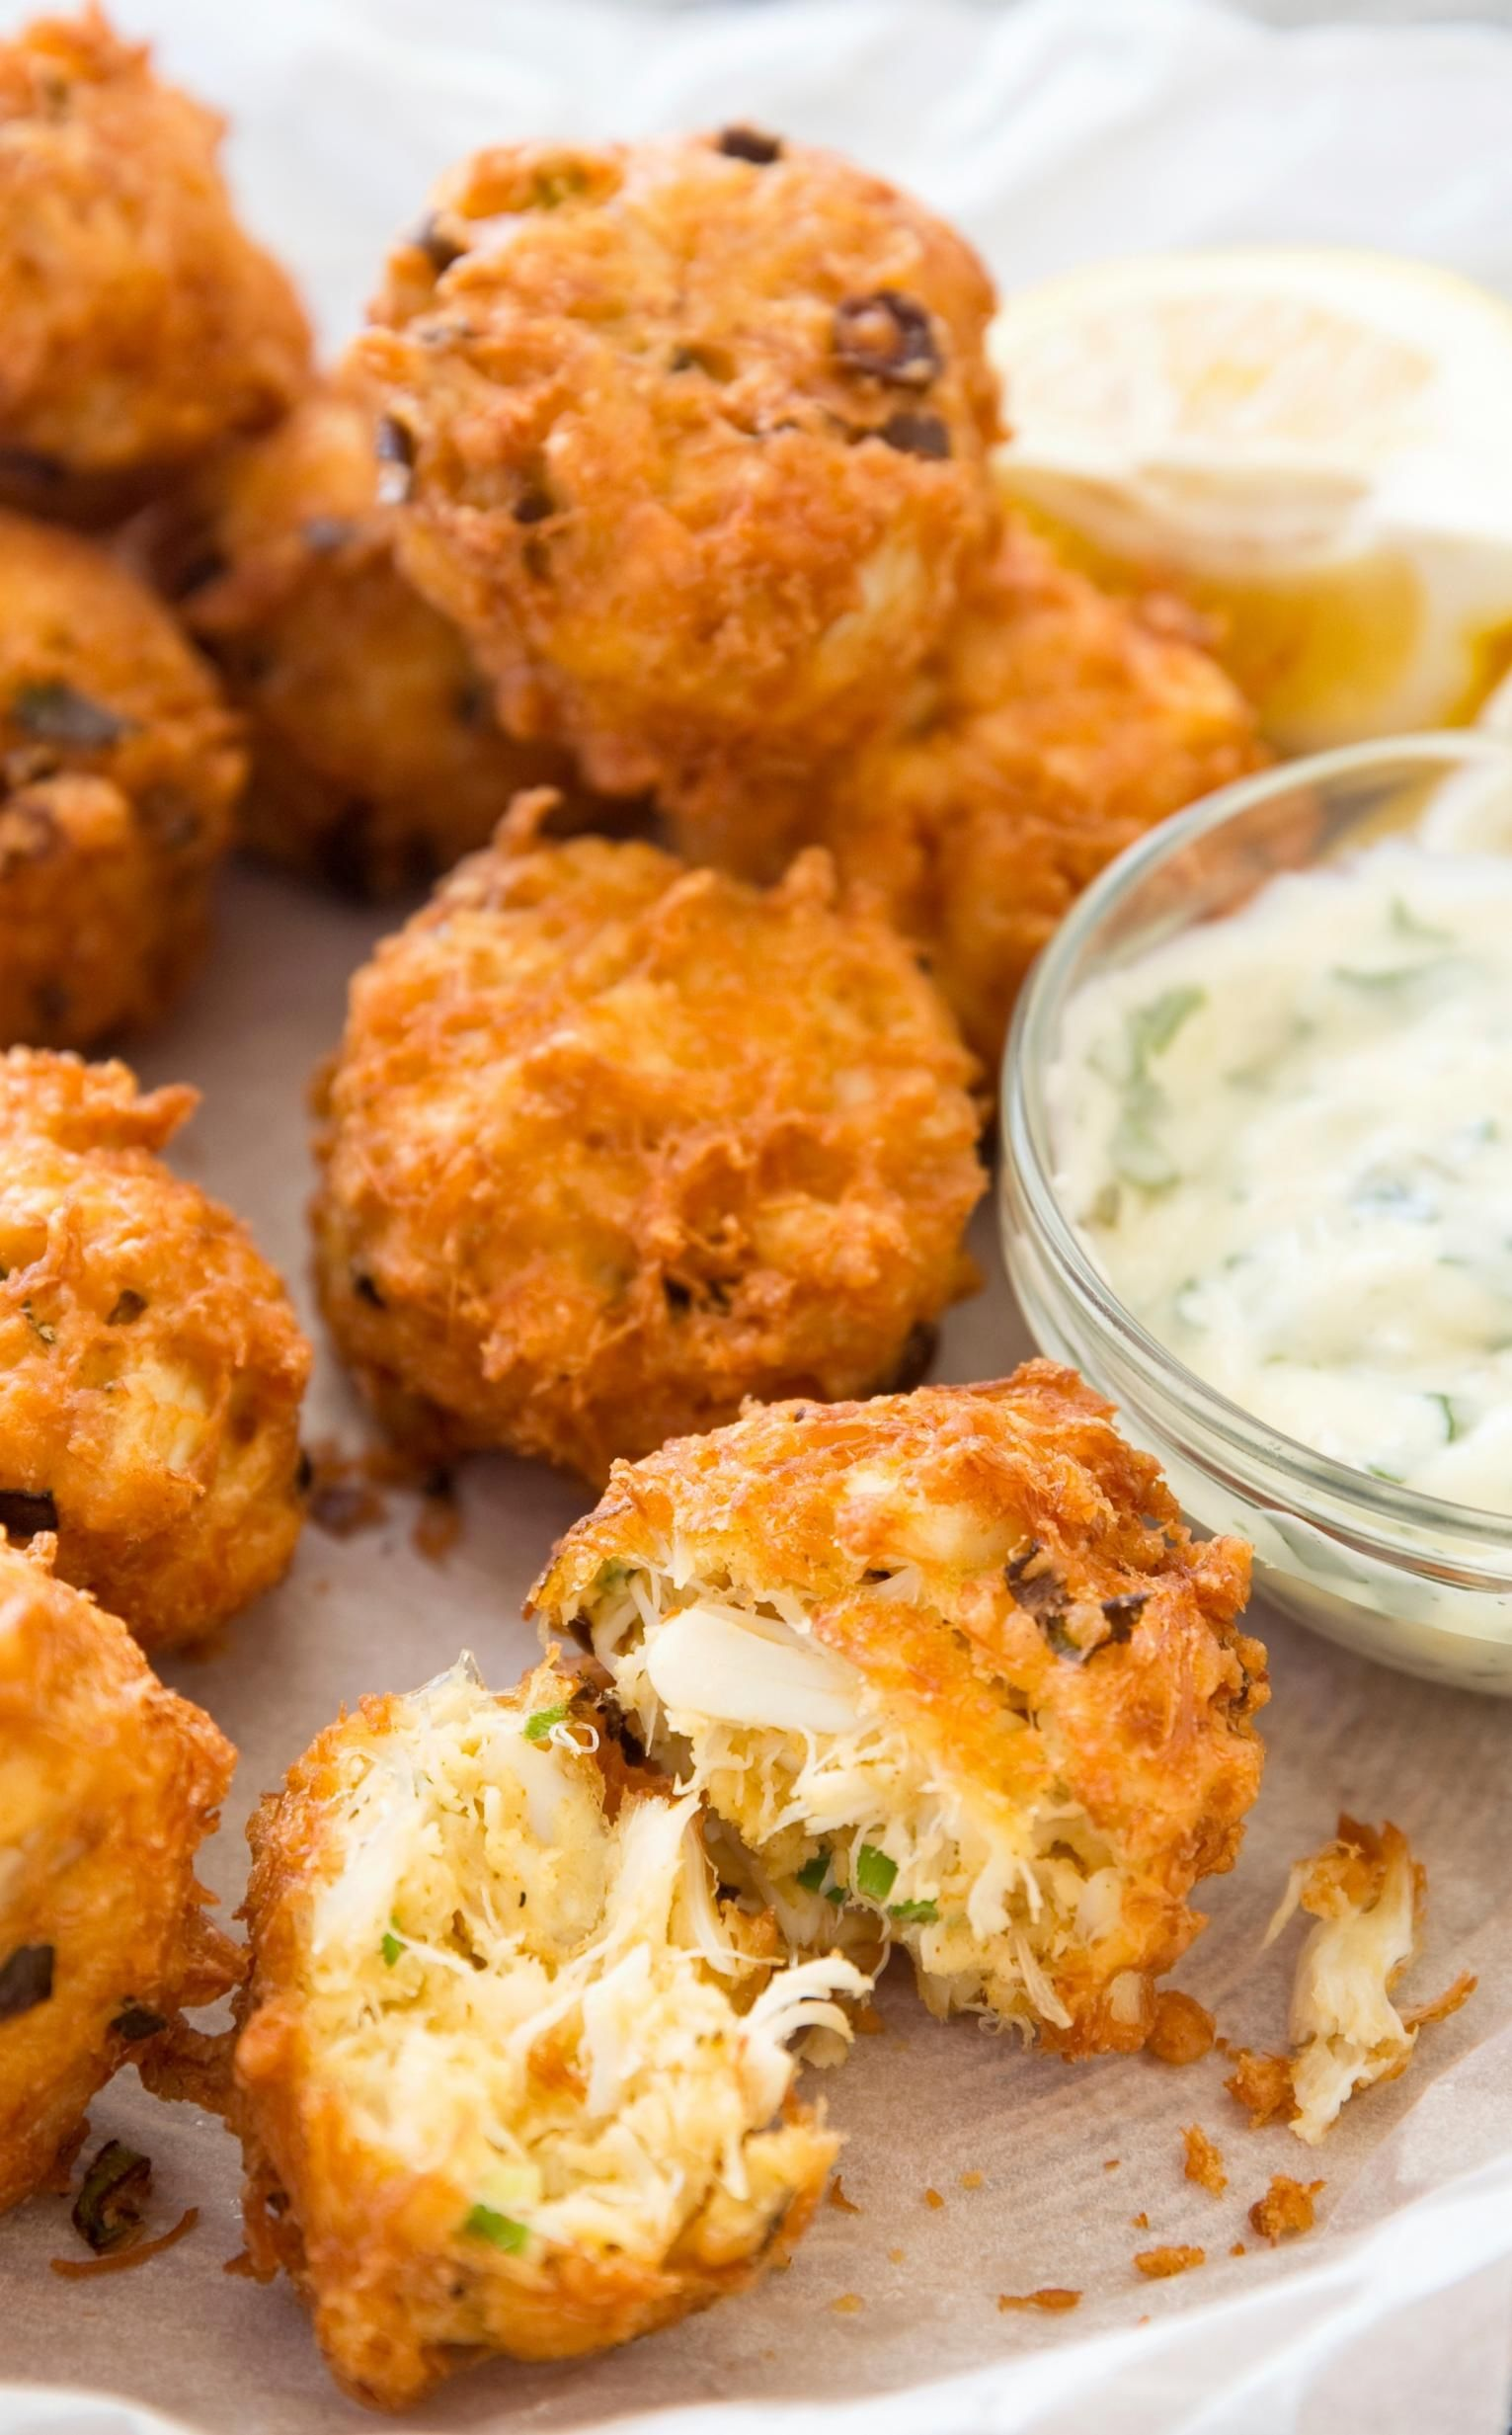 Cocktail Crab Cakes (8 Pieces) with Remoulade